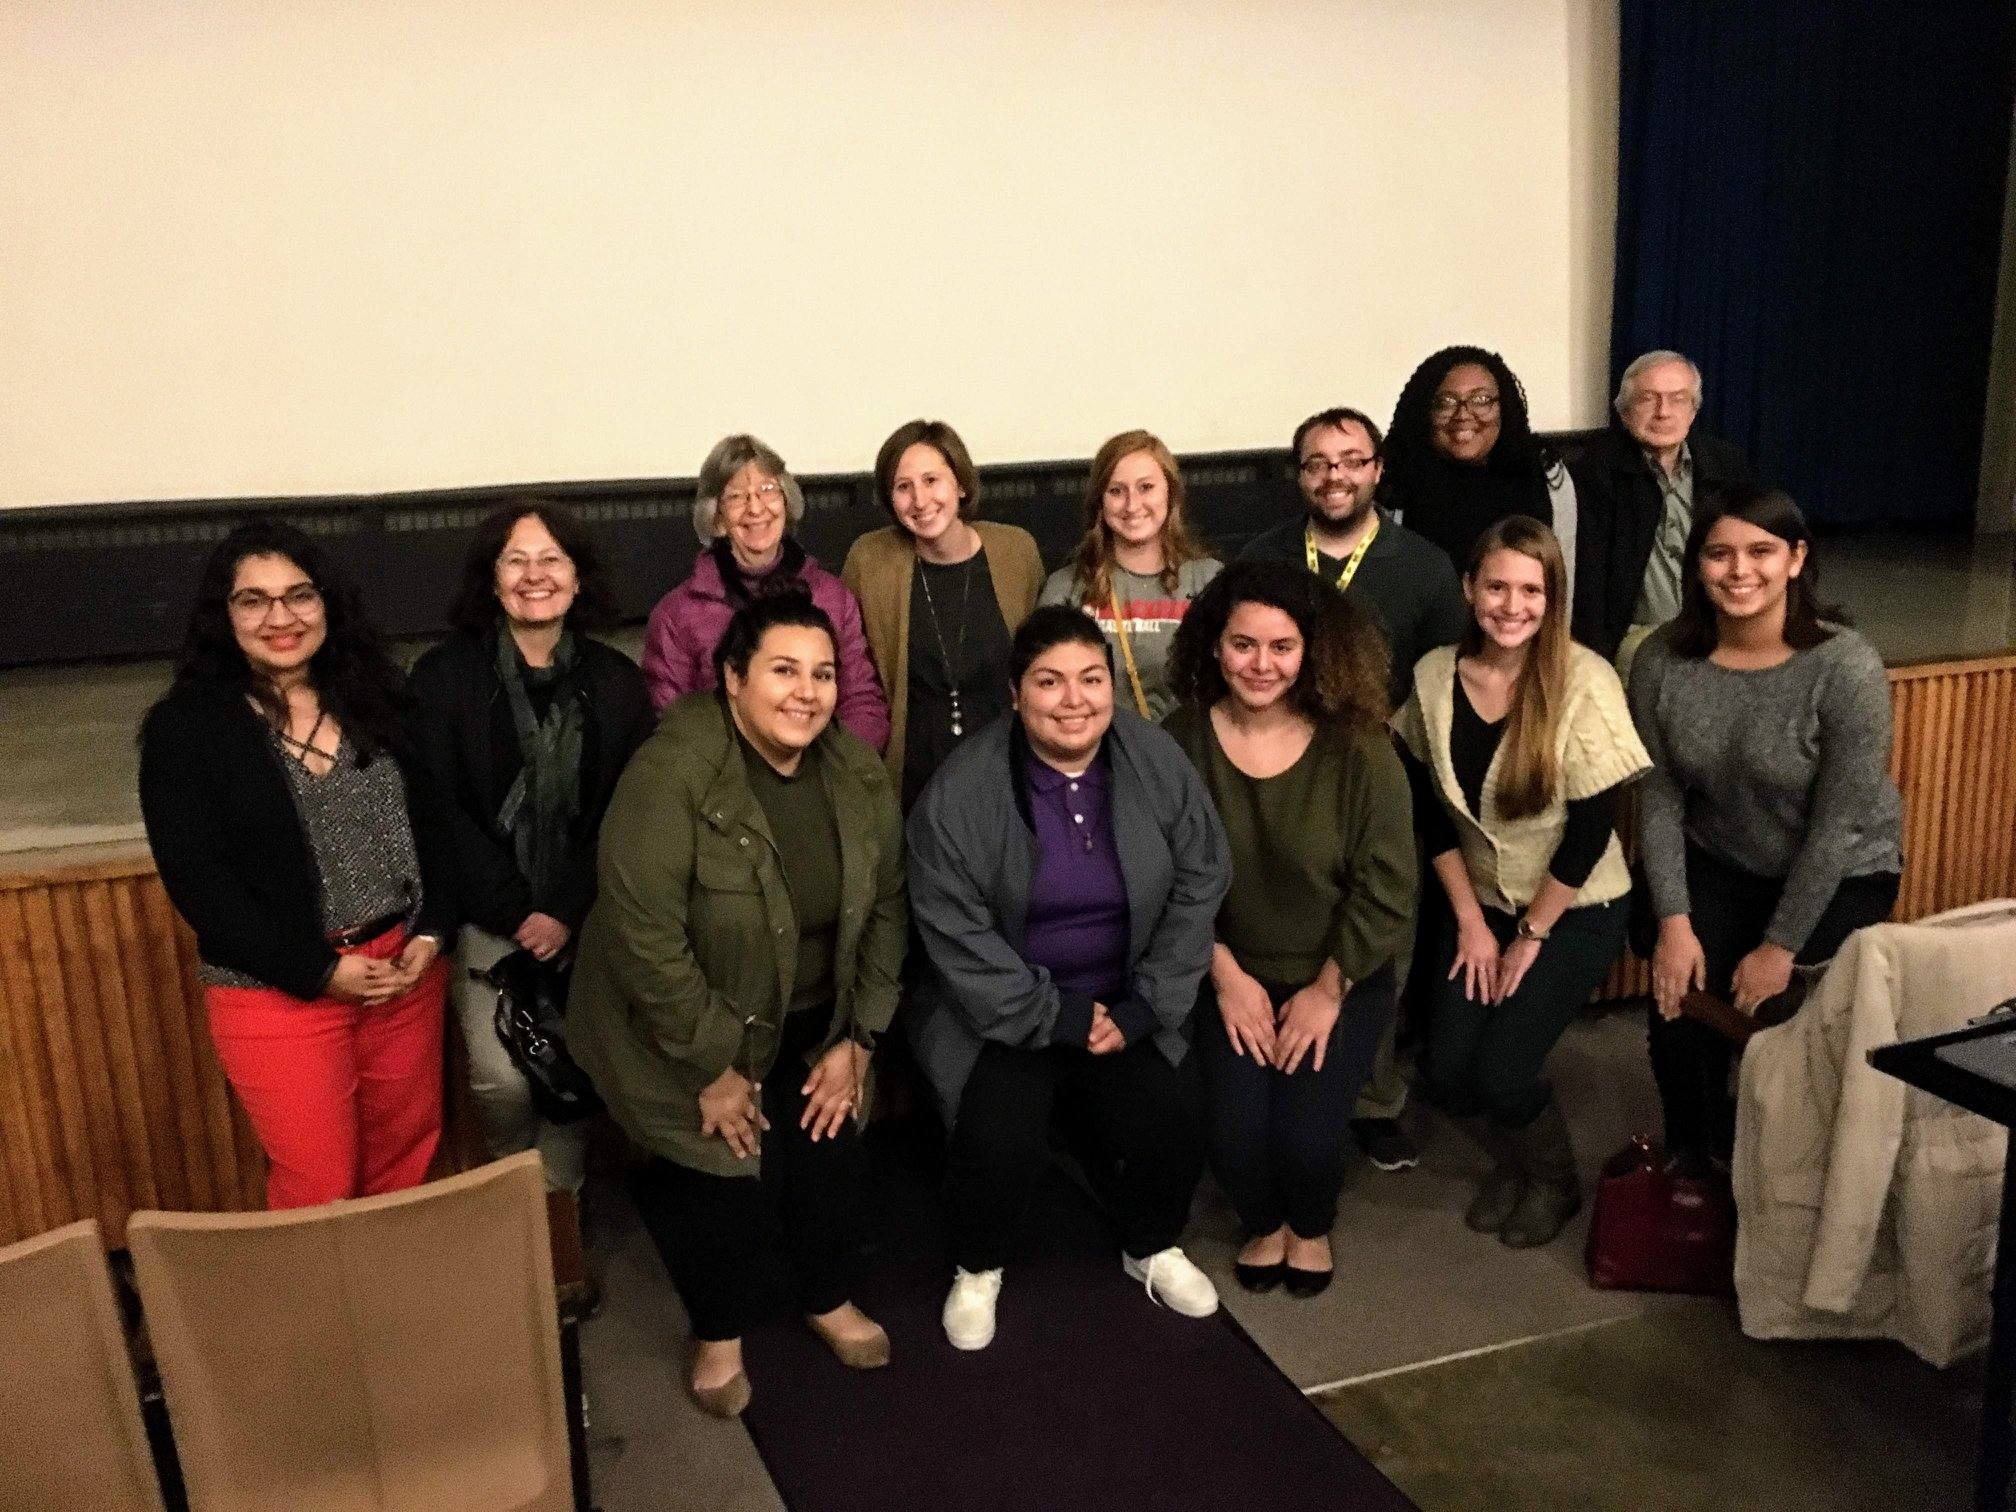 Casa Latina and Film Club at Western Illinois University - October 2018